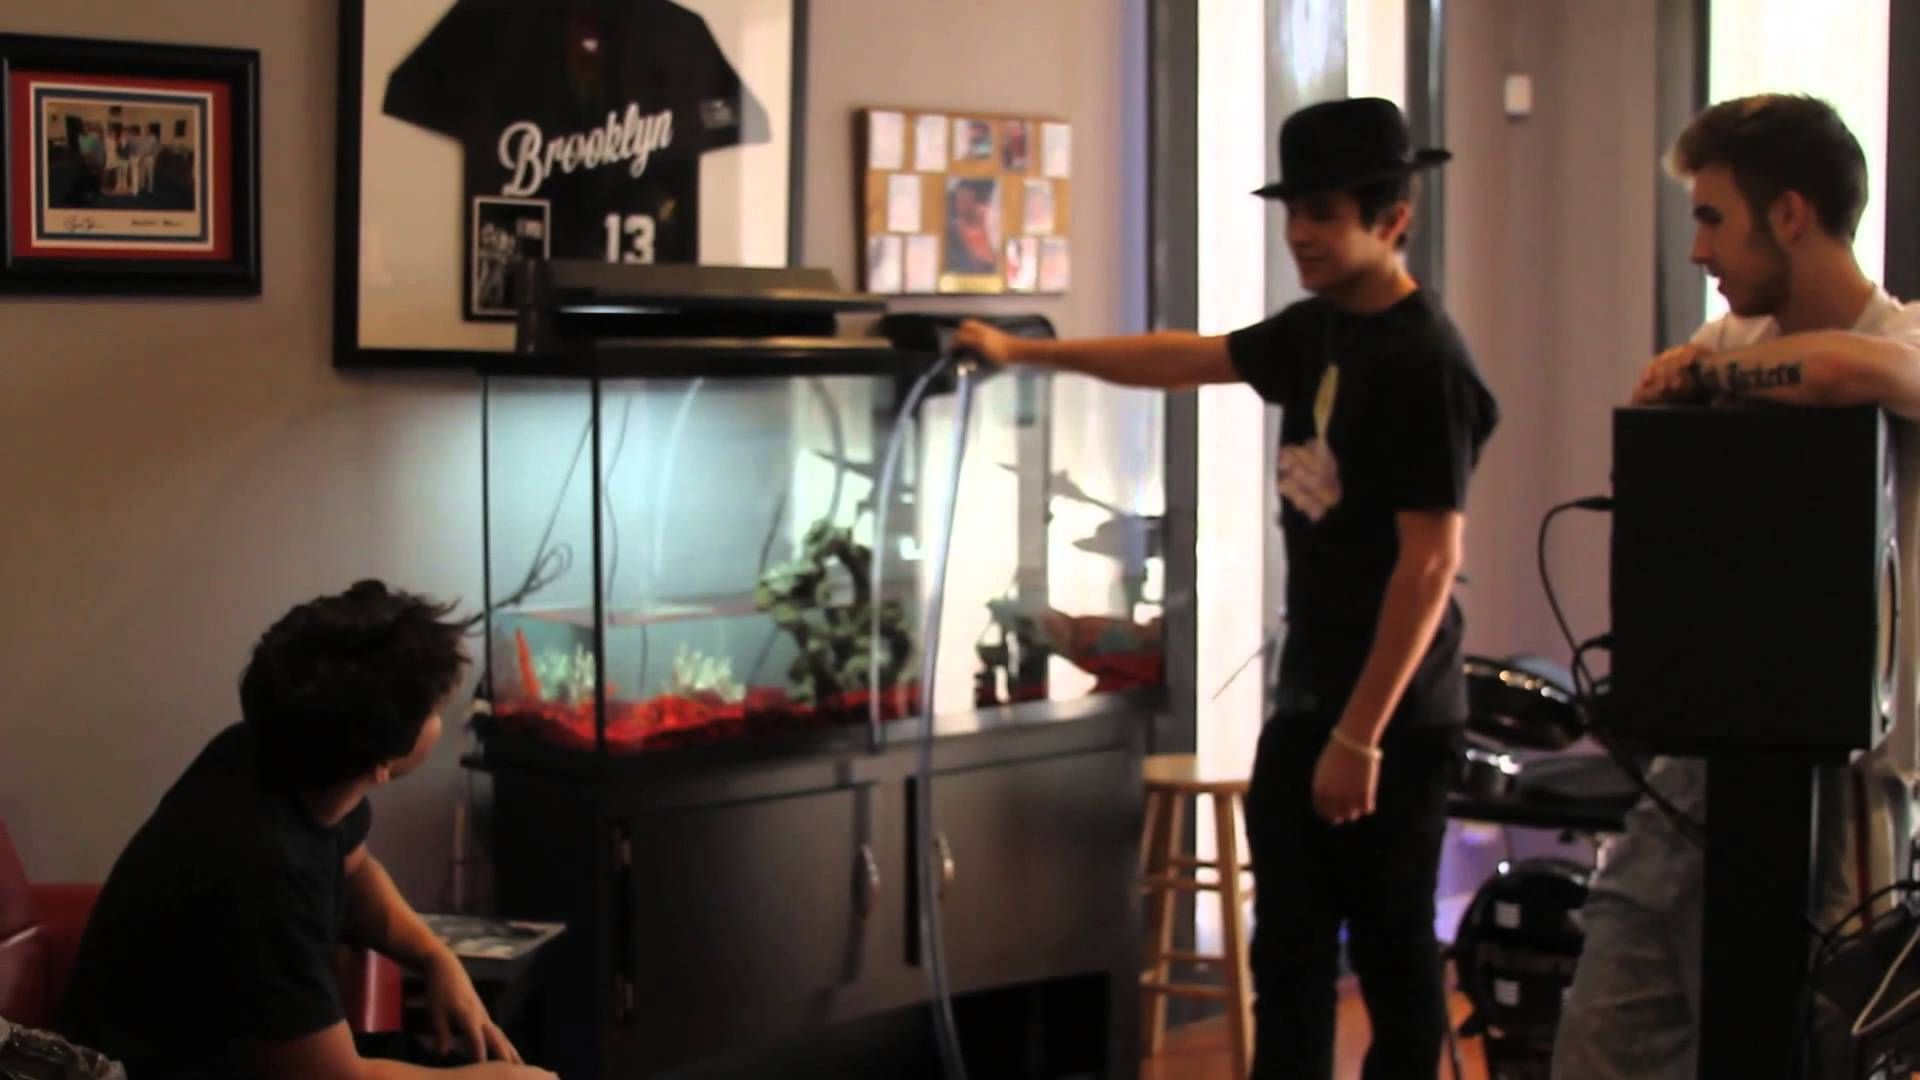 Fishy Business Austin Buys A Fish Tank For His New House Fish Tank Austin Mahone Austin